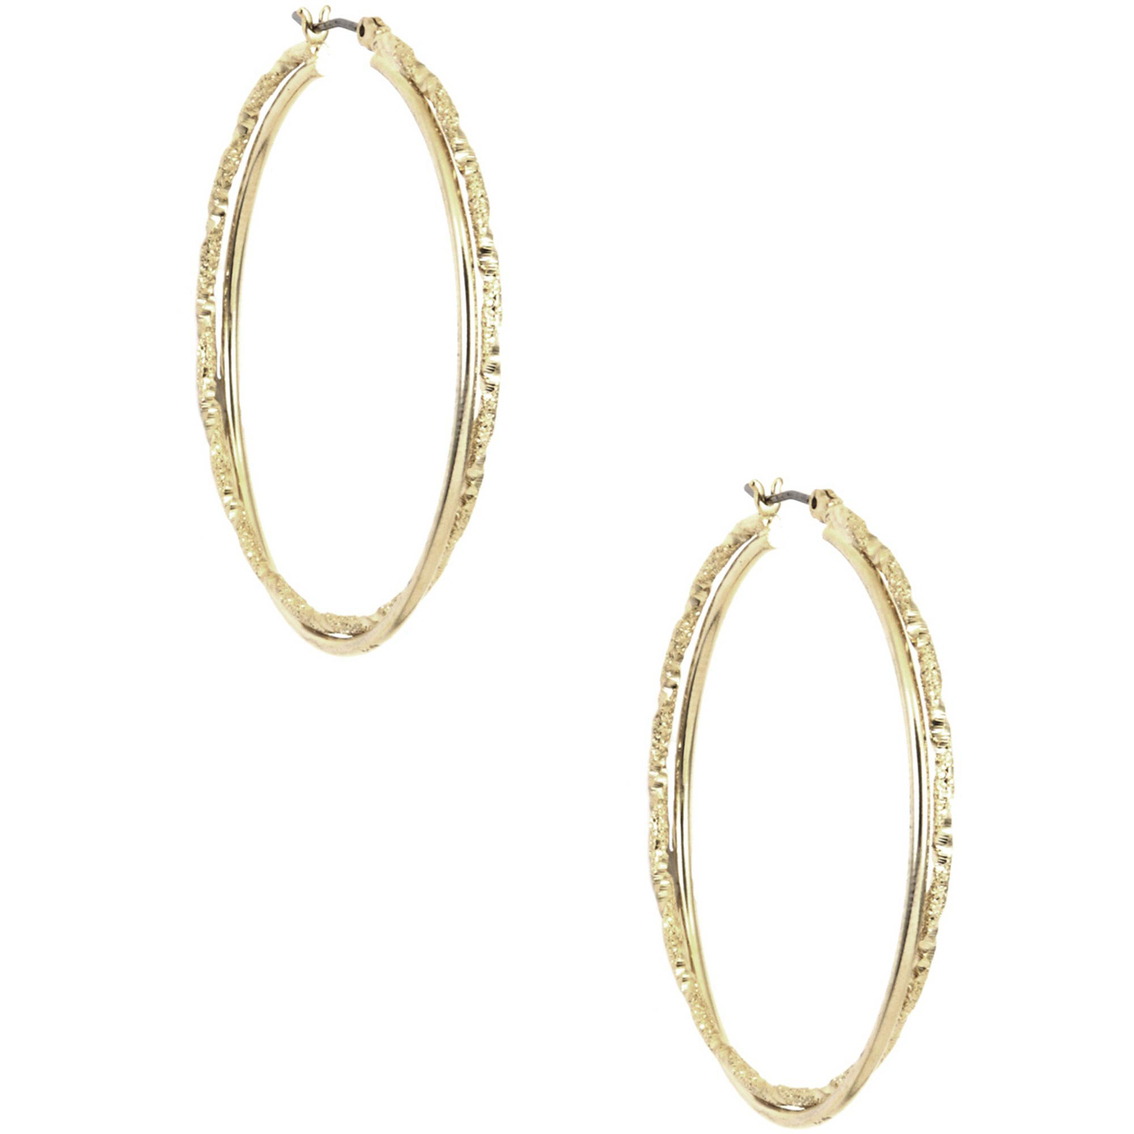 Anne Klein Goldtone Medium Twist Hoop Earrings